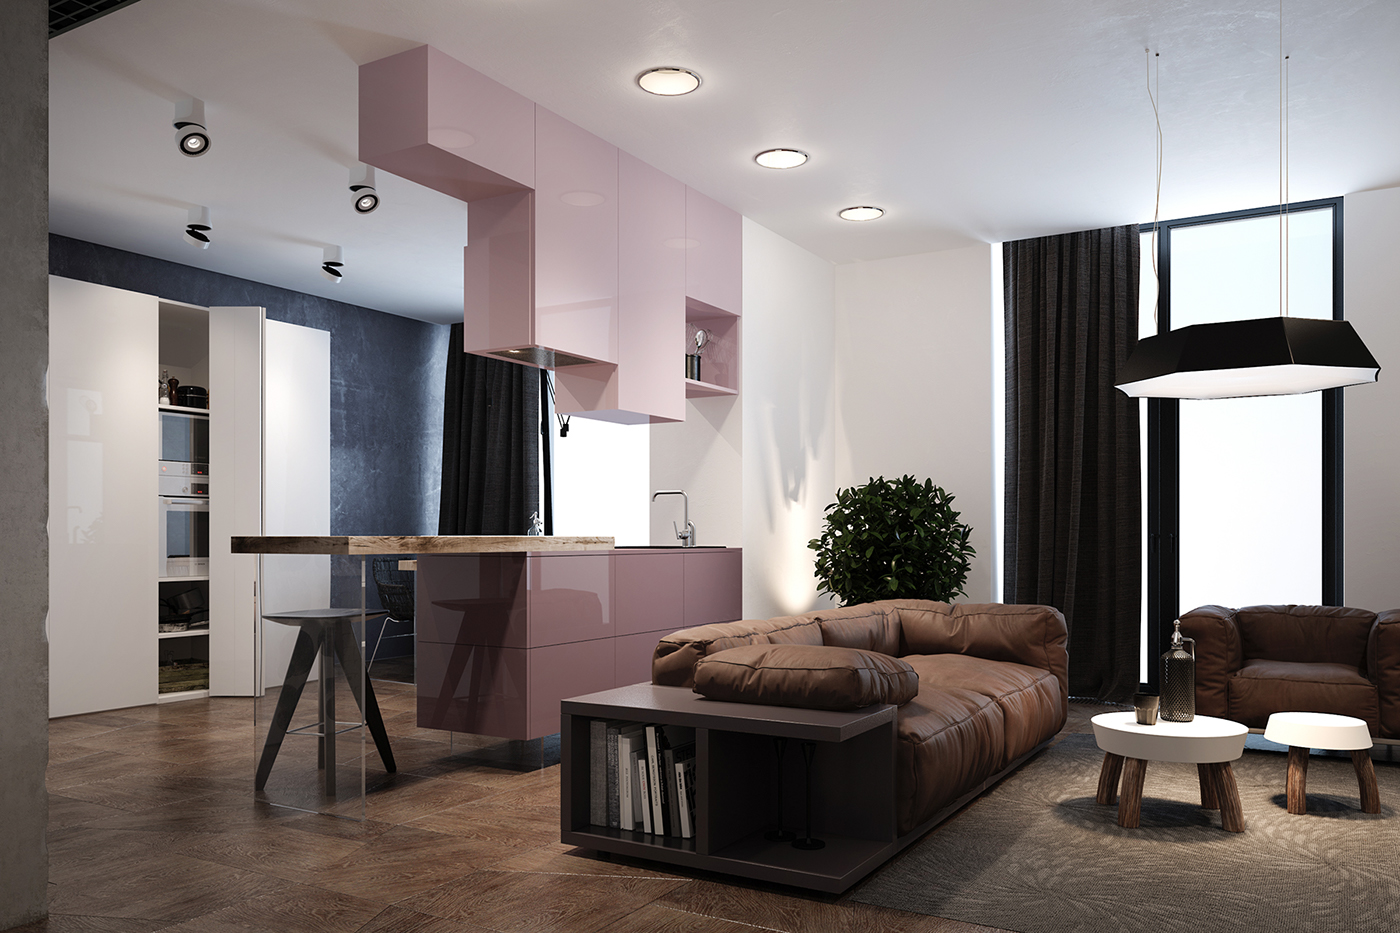 Minimalistic Interior With A Blend Of Different Textures And Colors